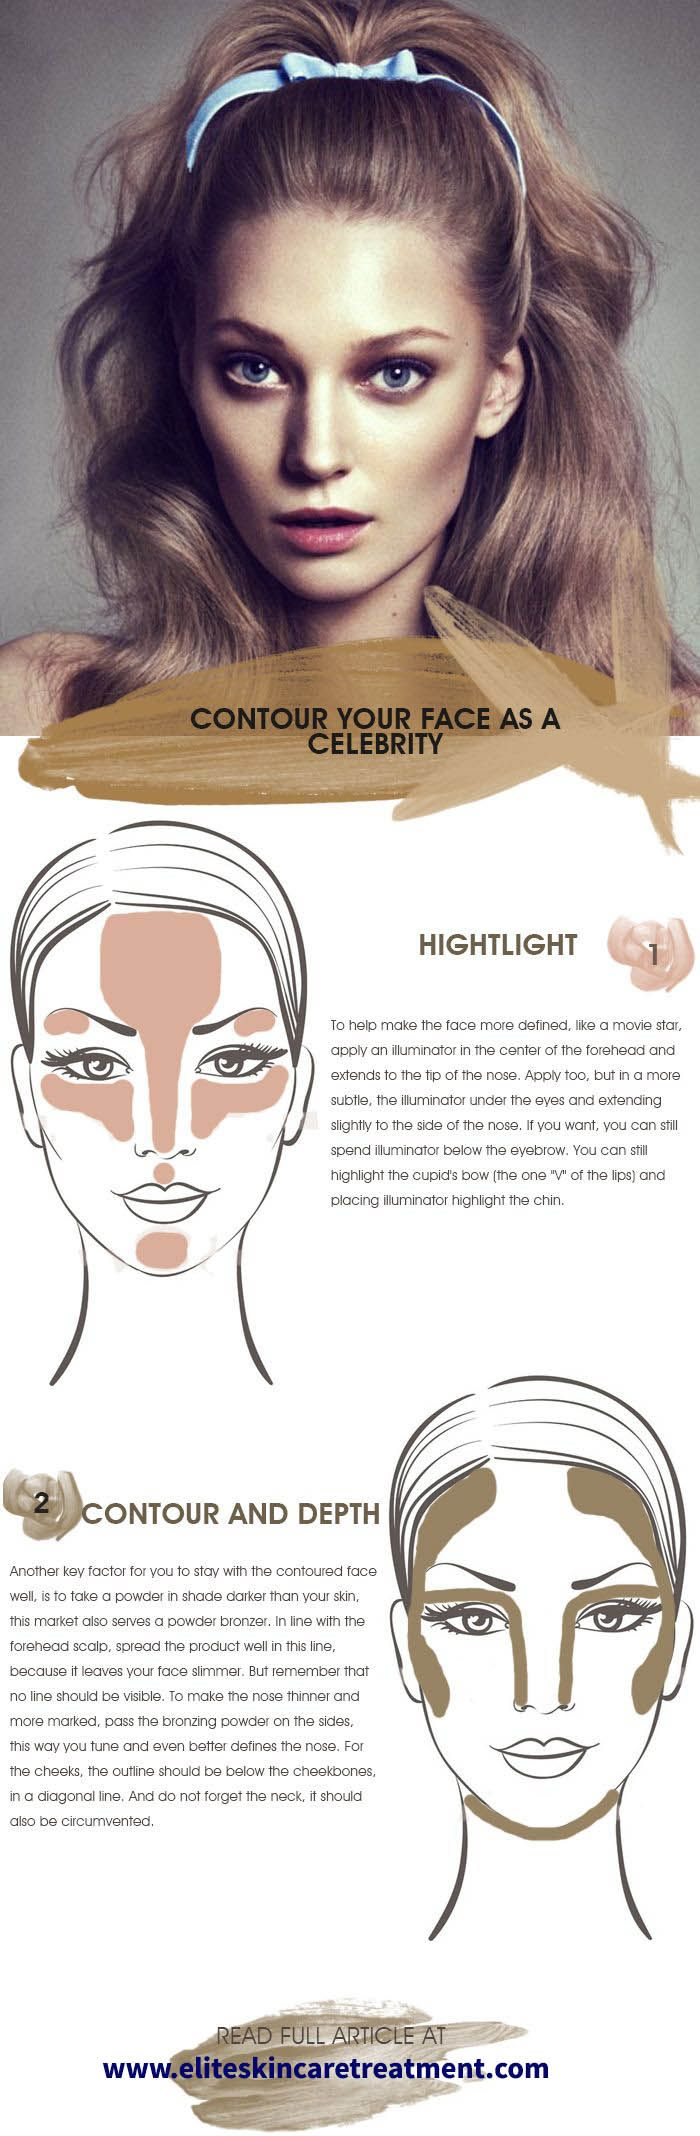 How to contour the face like a celebrity - The face contour is widely used by celebrities to highlight strengths and minimize weaknesses. It is simply the act of using light and dark colors in makeup to define the points of the face. READ MORE: http://www.eliteskincaretreatment.com/how-to-contour-the-face/